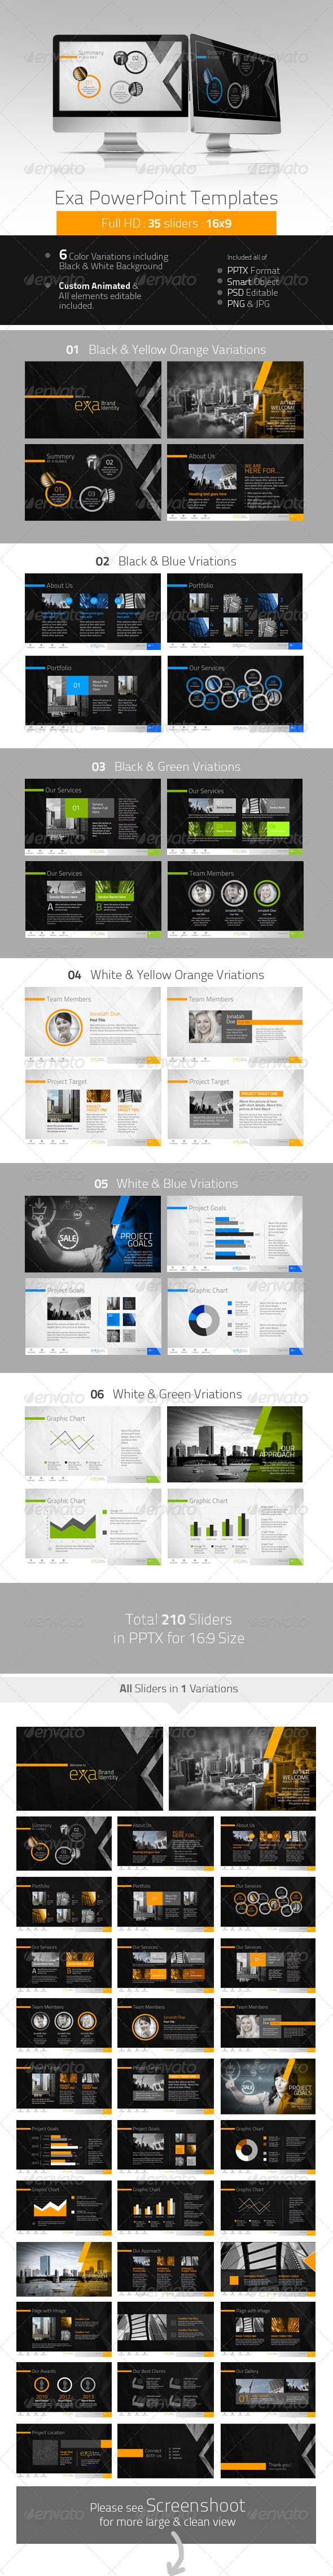 GraphicRiver Exa Creative PowerPoint Presentation 4741238